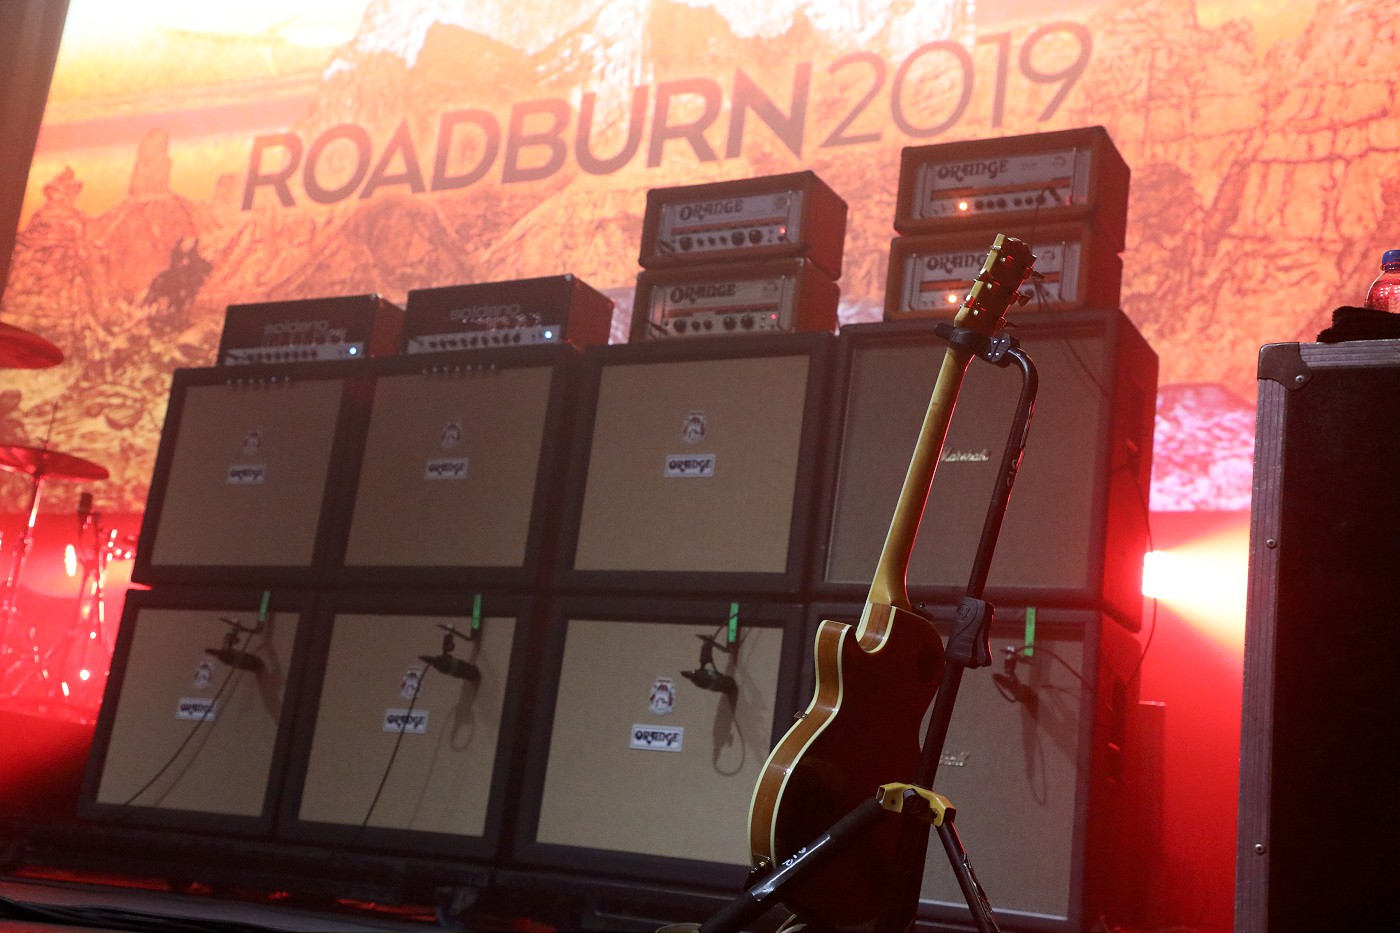 Roadburn 2019 banner (Photo by JJ Koczan)